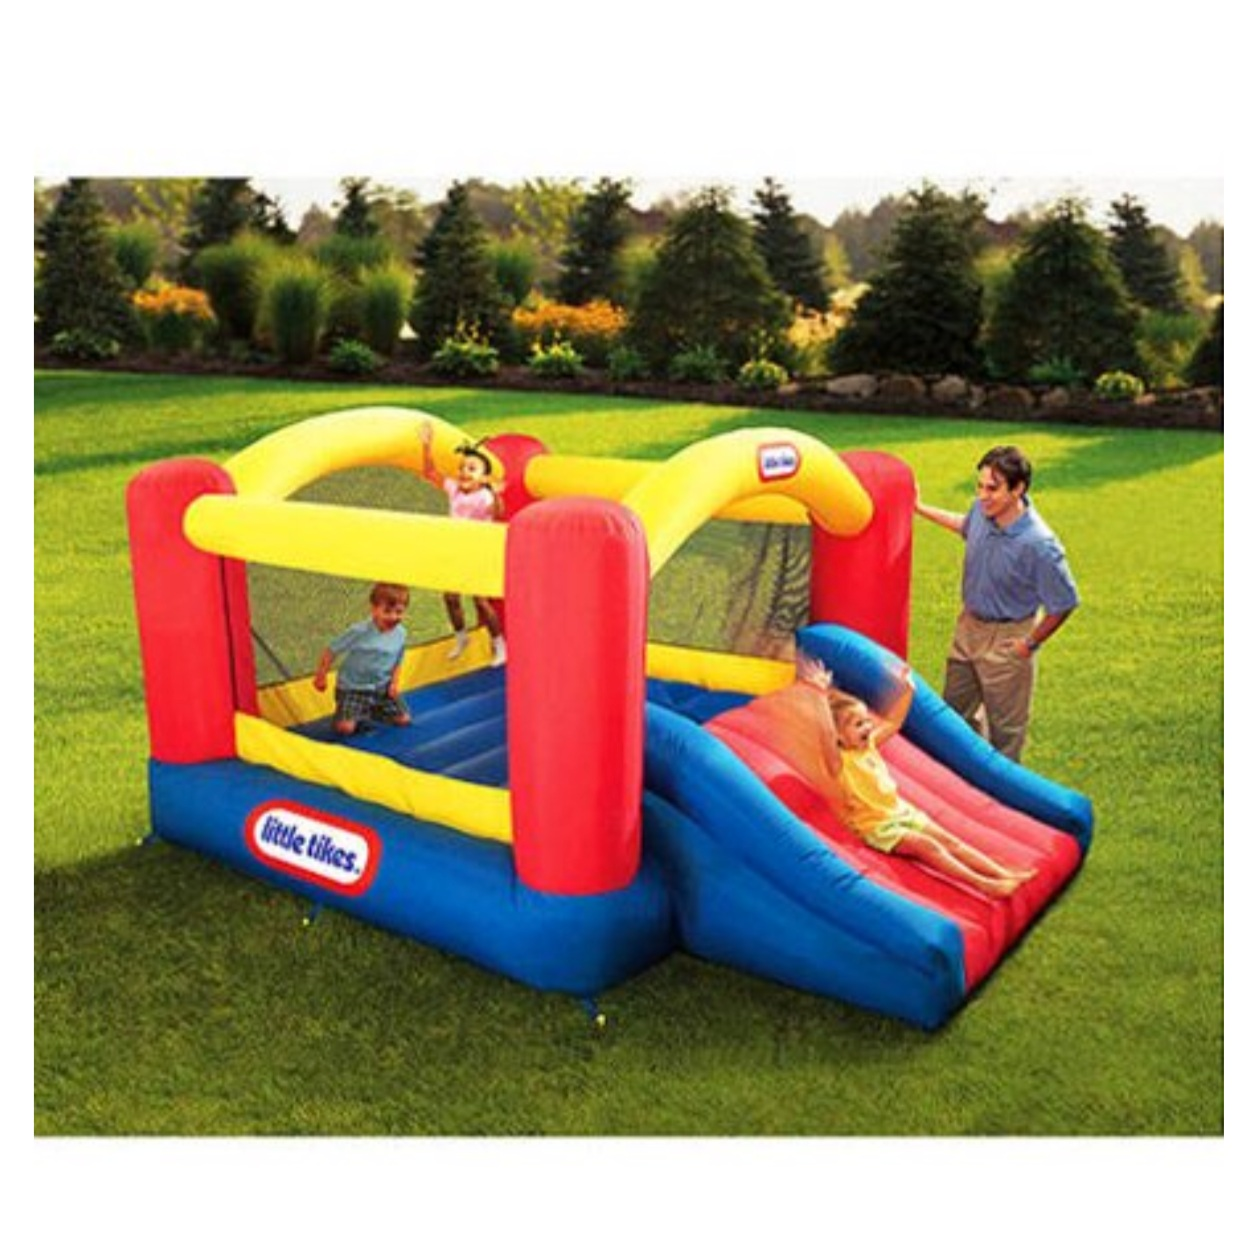 - This is on sale on Walmart.com and Amazon.com for $189!Find it here.